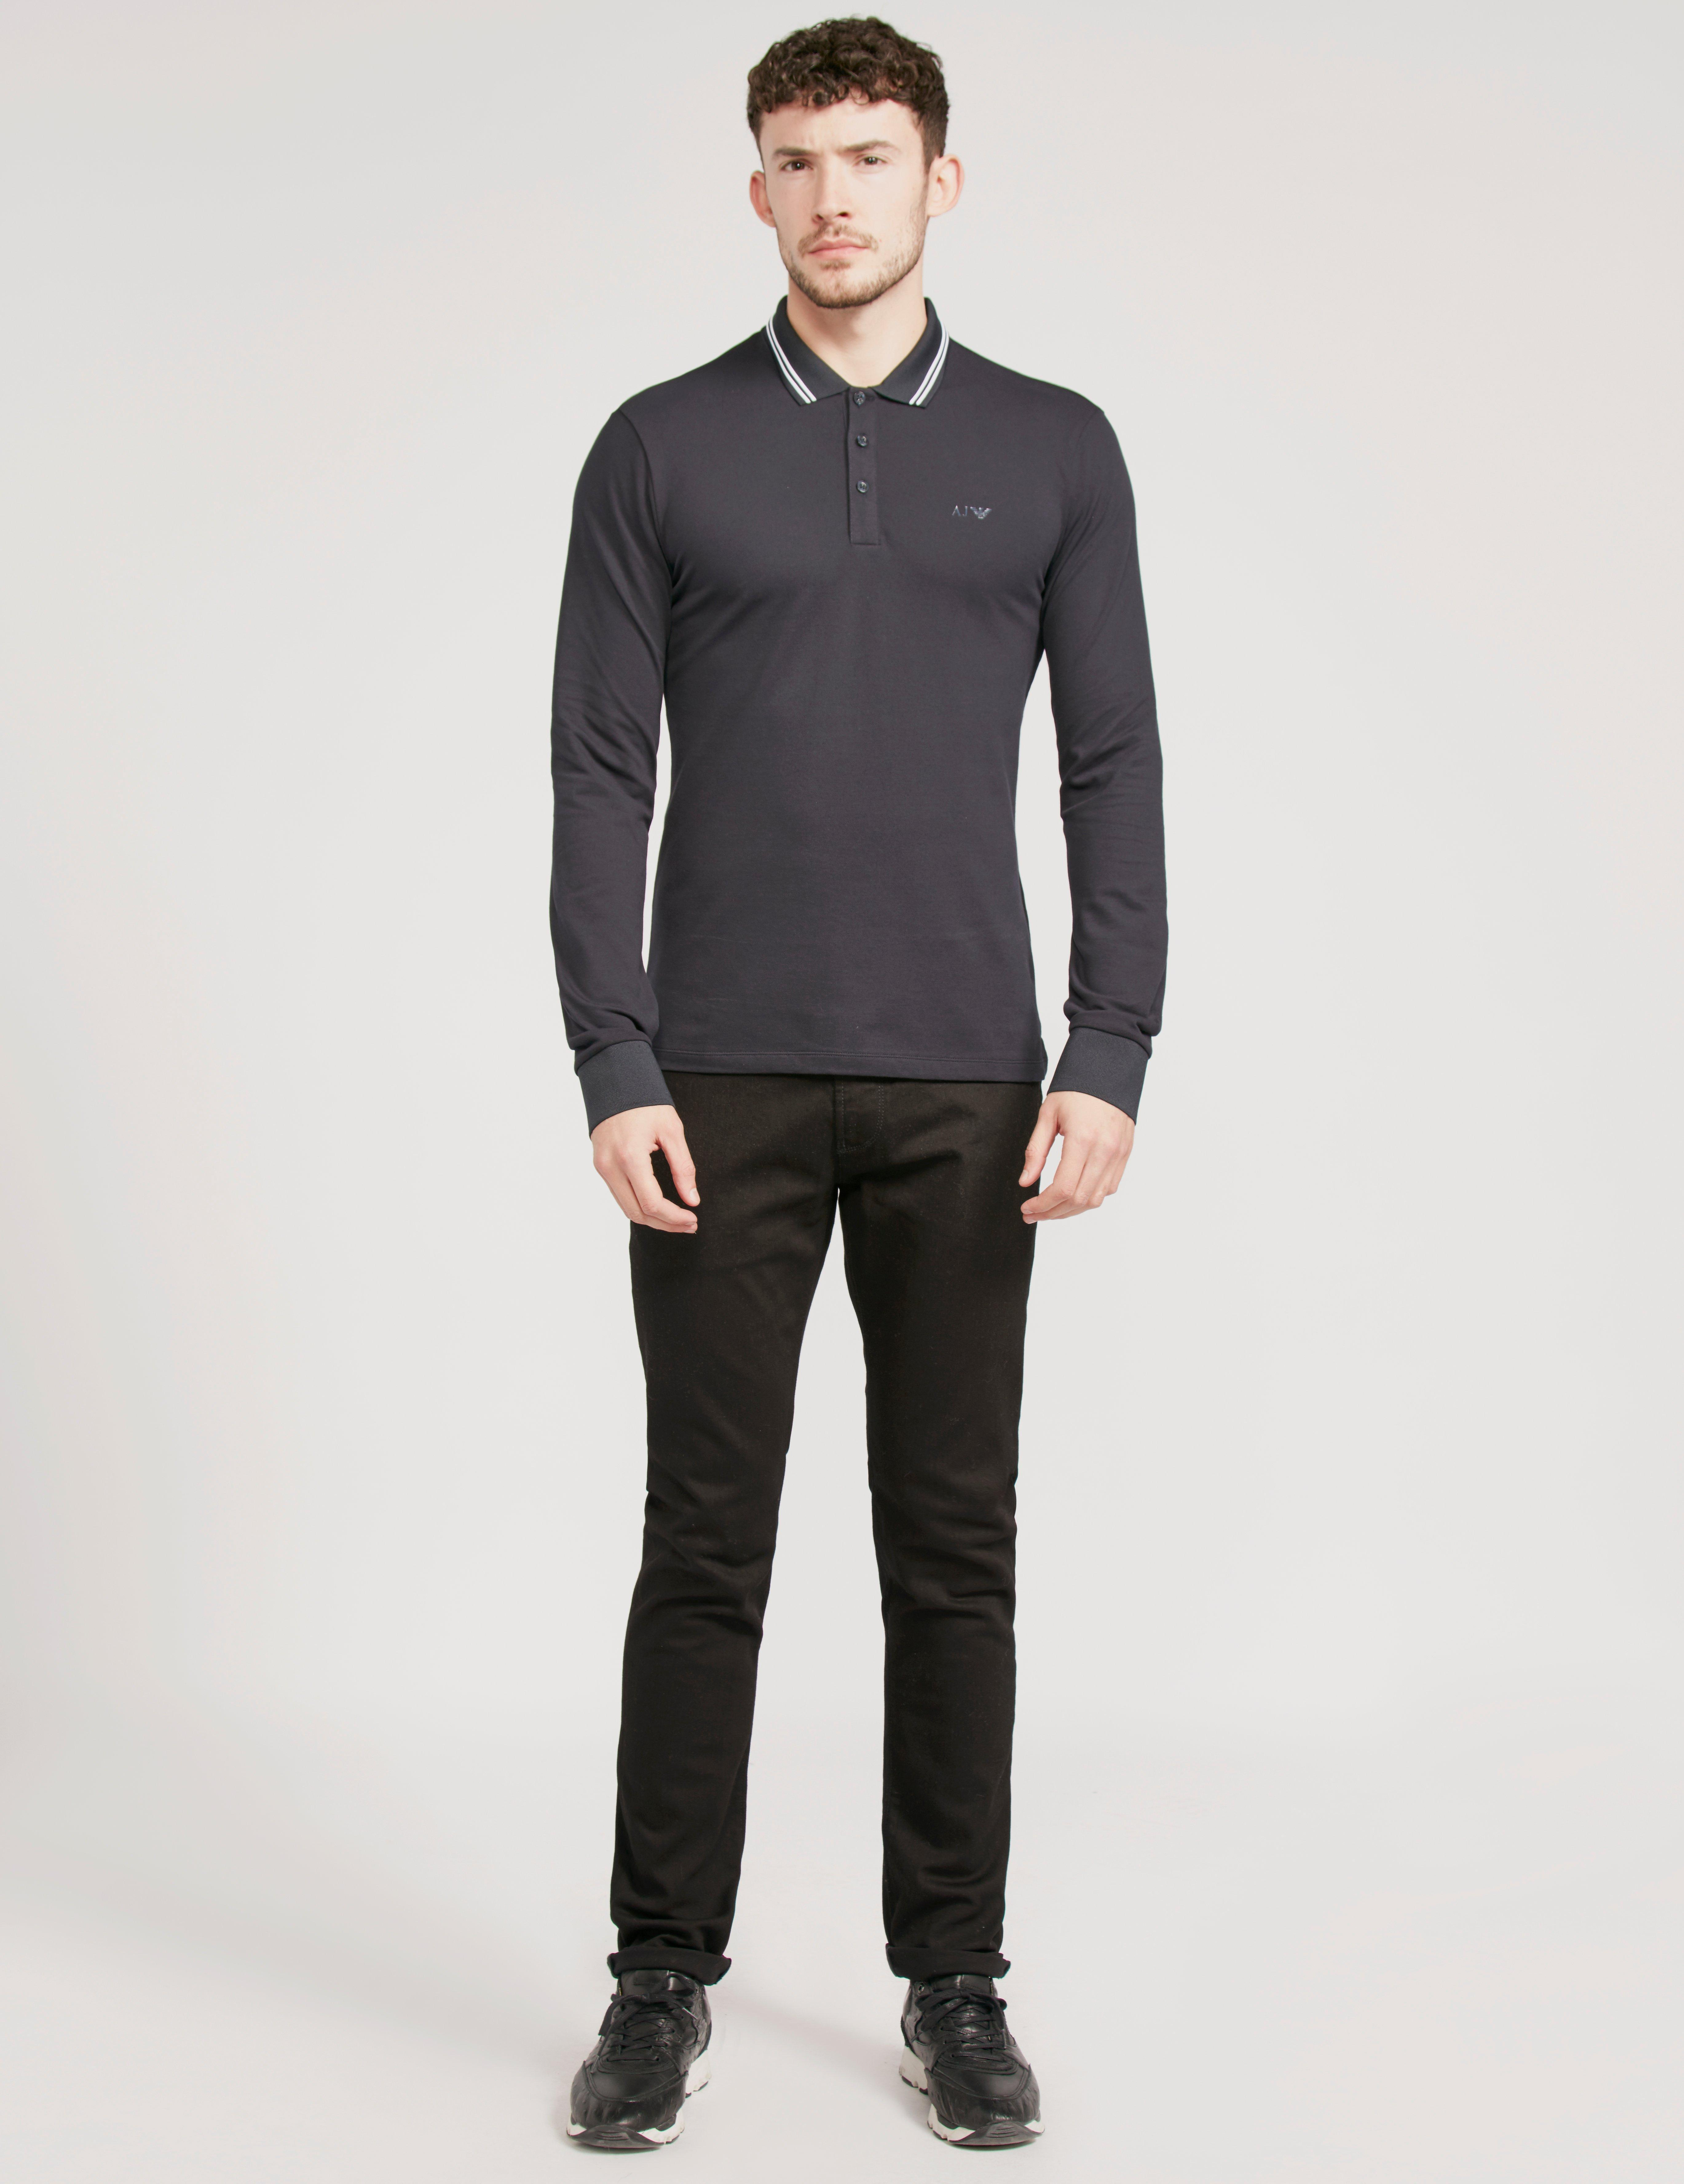 f4e49211 Armani Jeans Modern Fit Long Sleeve Polo Shirt Navy Blue in Blue for ...